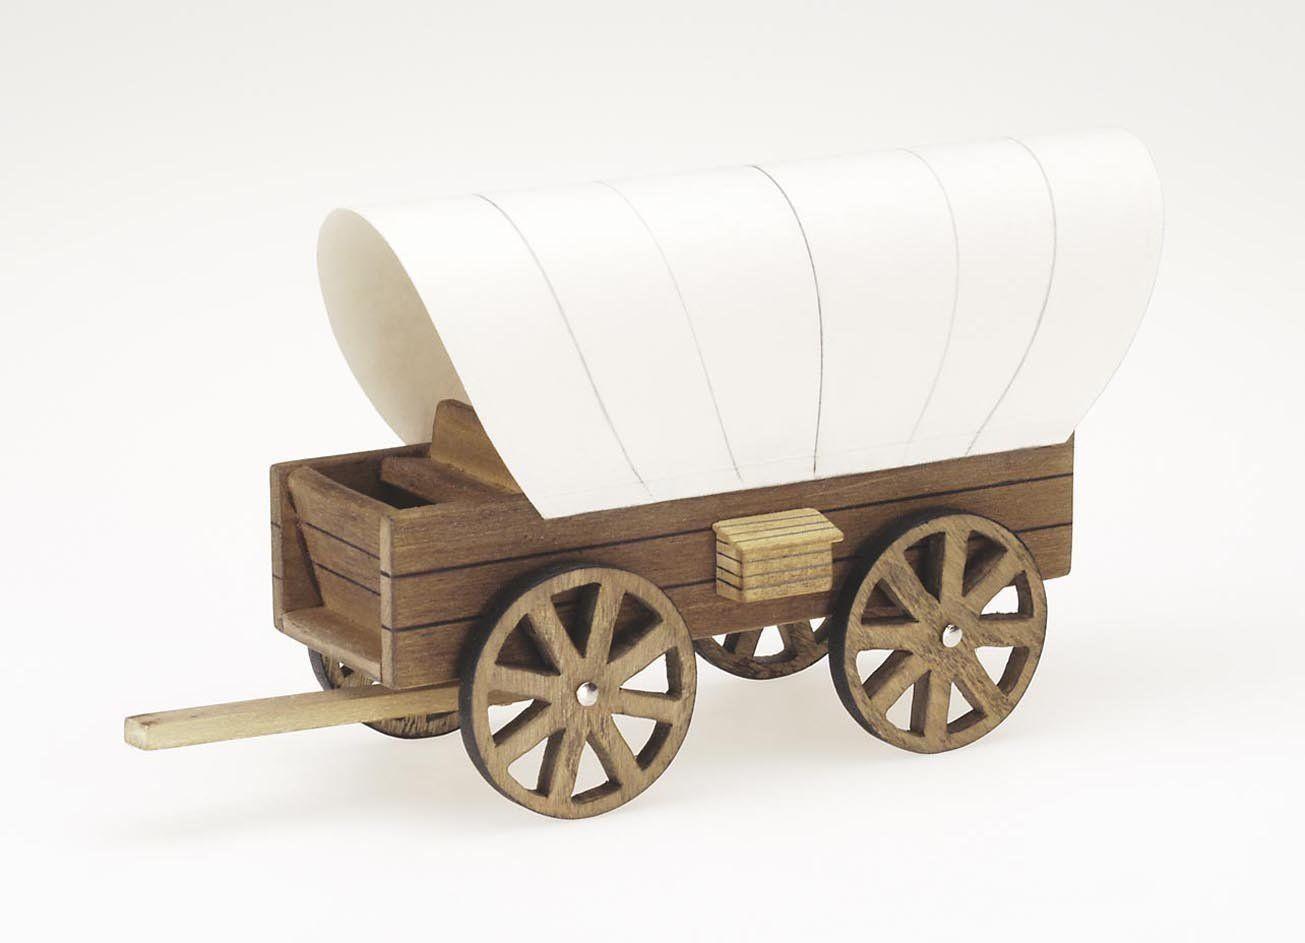 Wood Model Kit – Covered Wagon – 2 5 x 4 5 inches